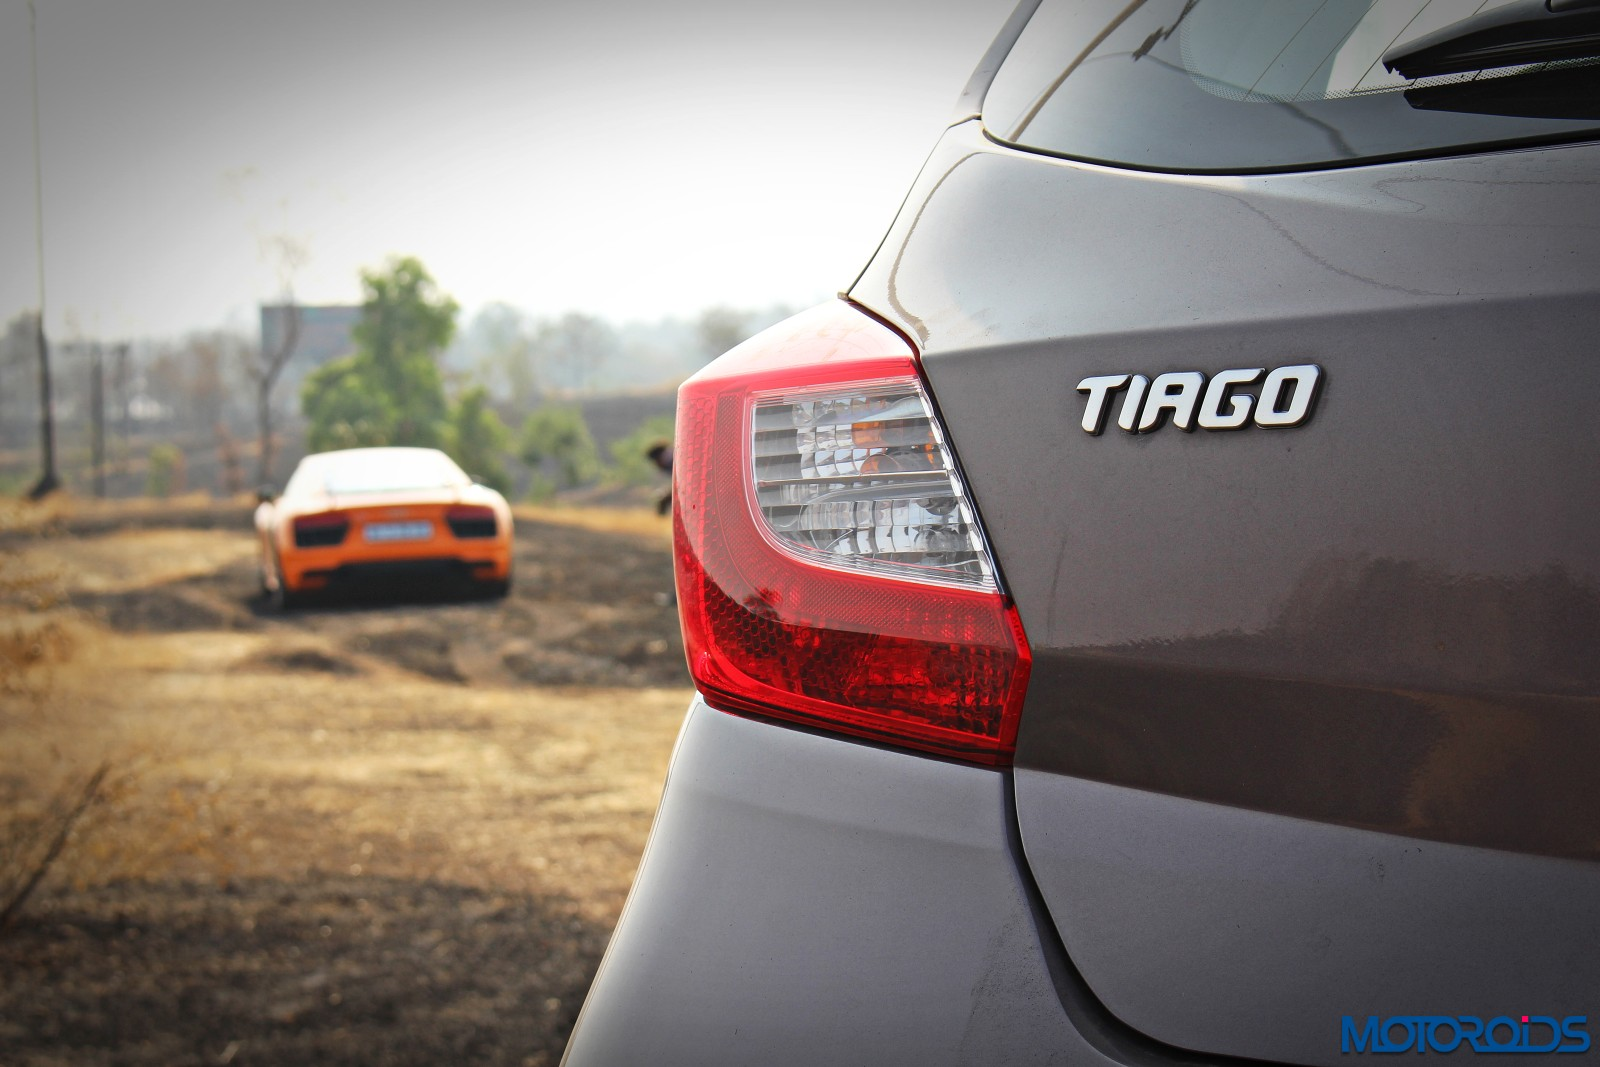 Tata-Tiago-Long-term-review-19